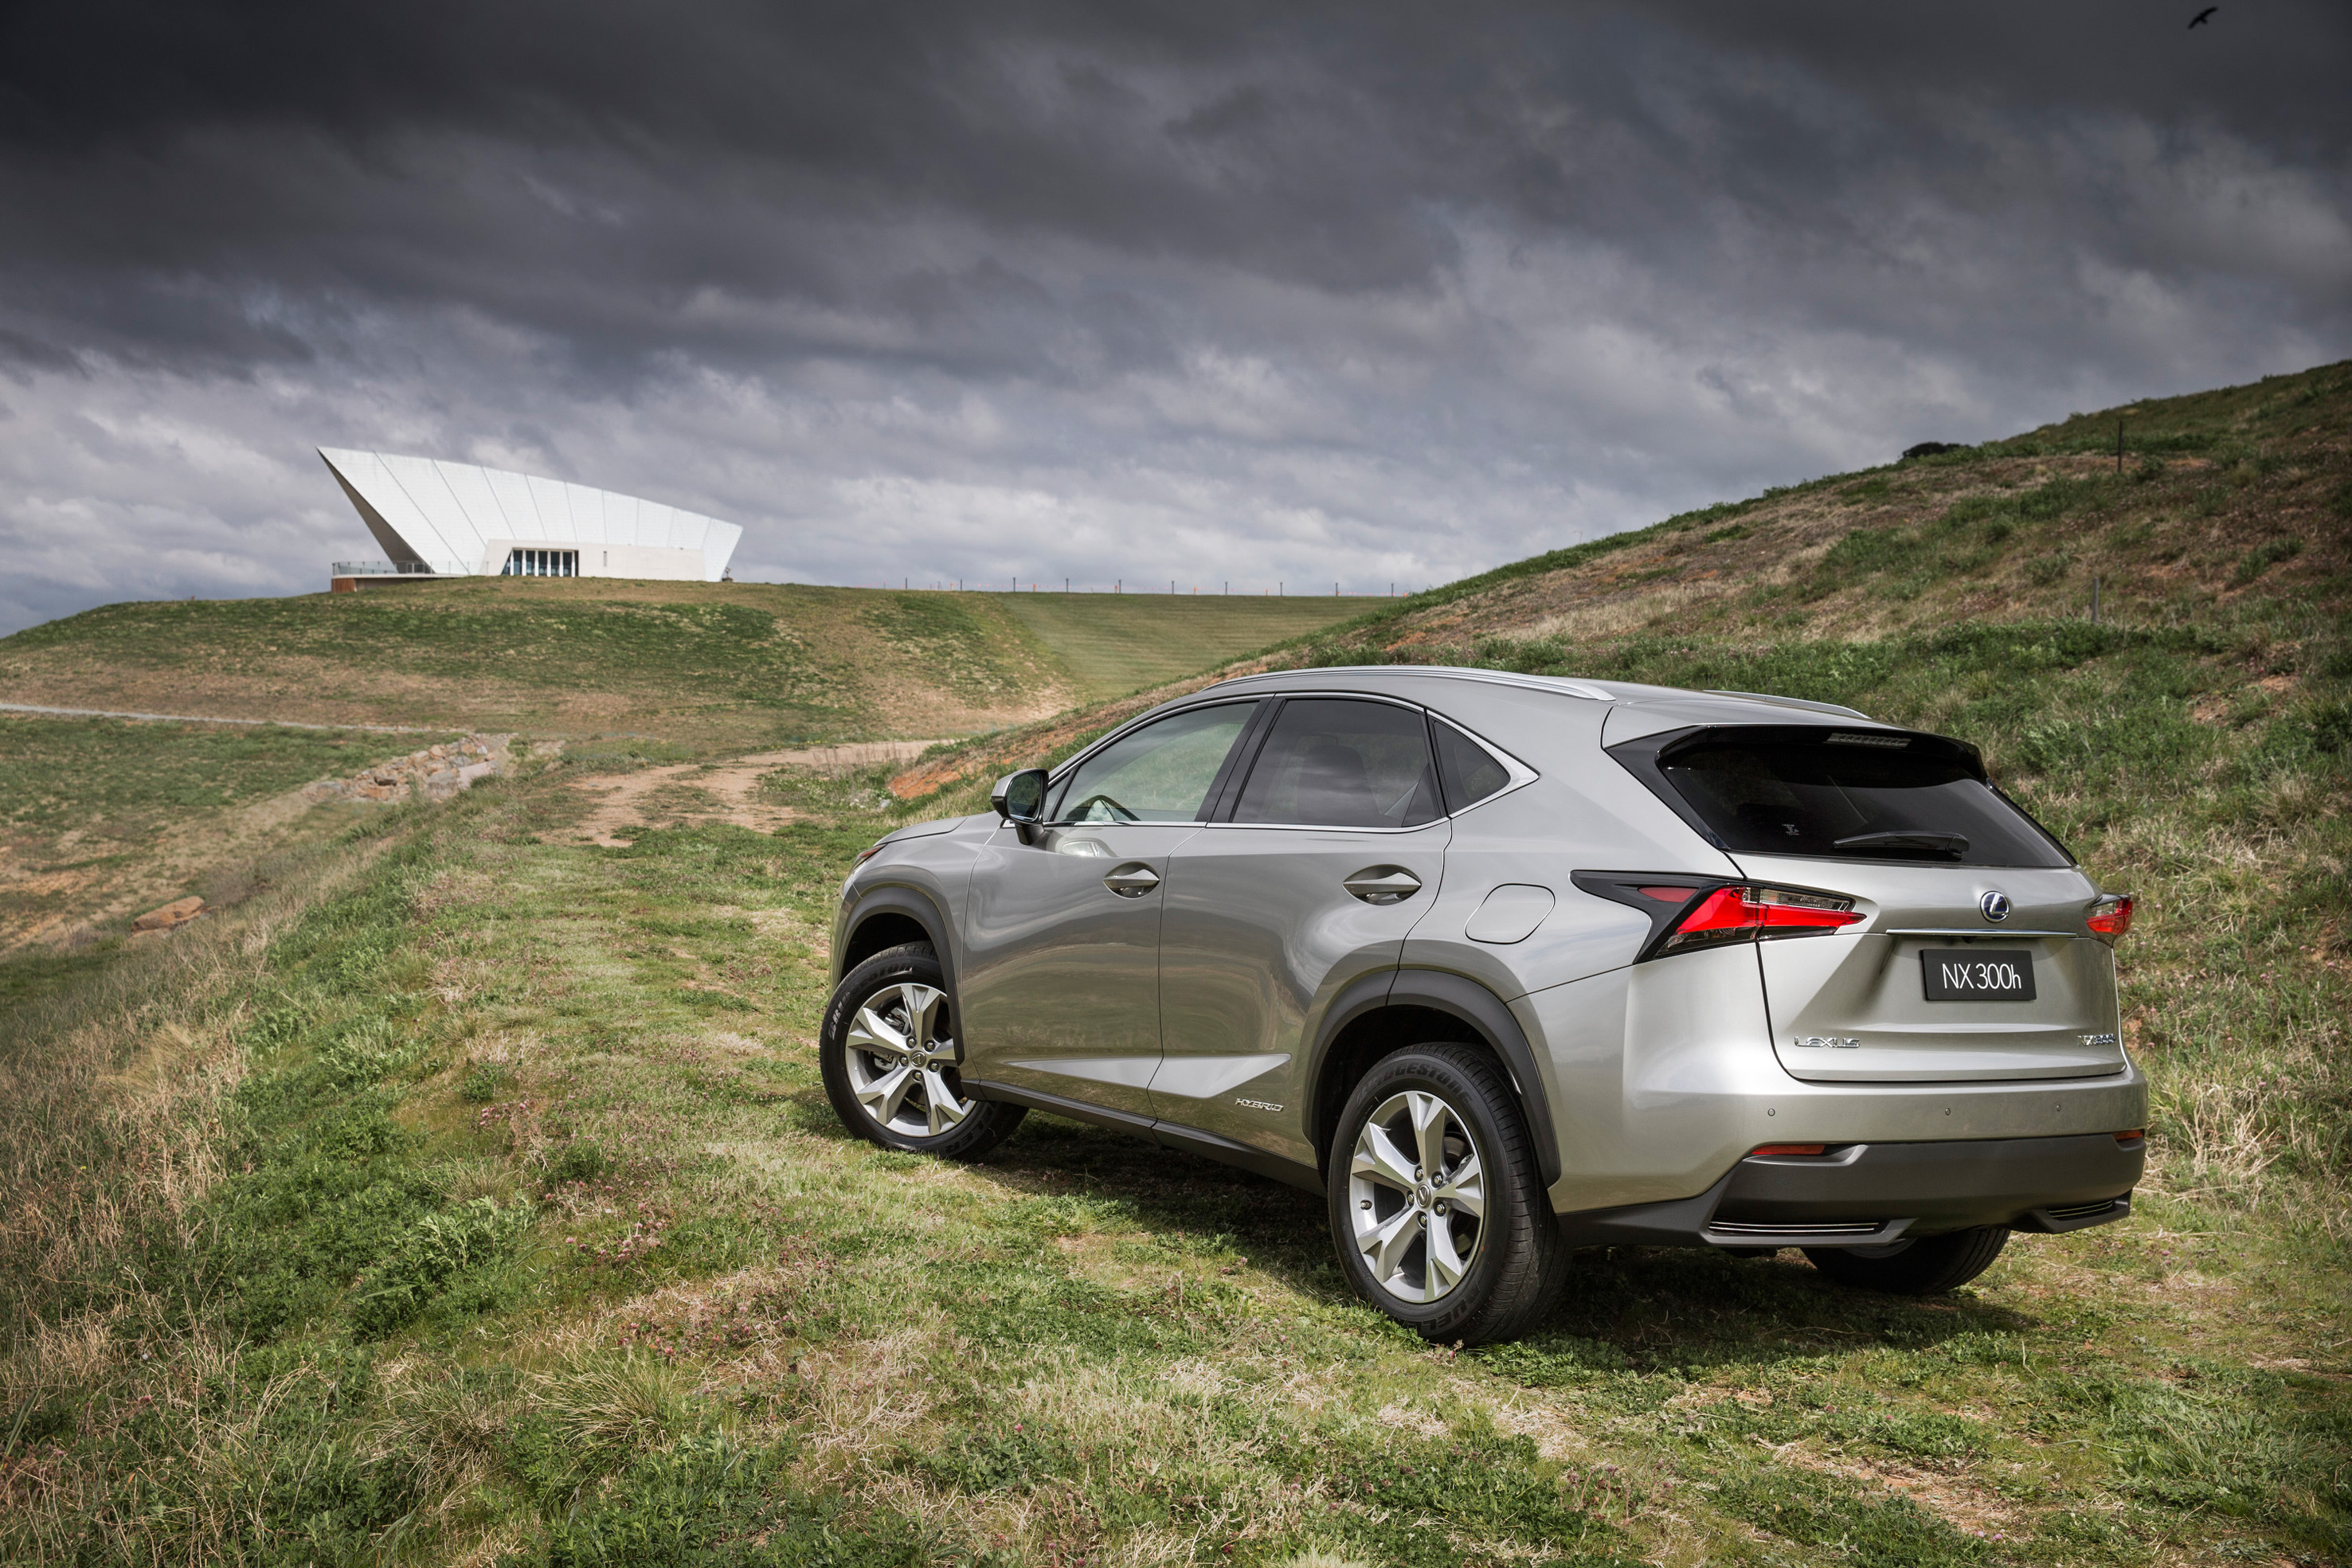 lexus nx 300h 2014 technical specifications interior and exterior photo. Black Bedroom Furniture Sets. Home Design Ideas